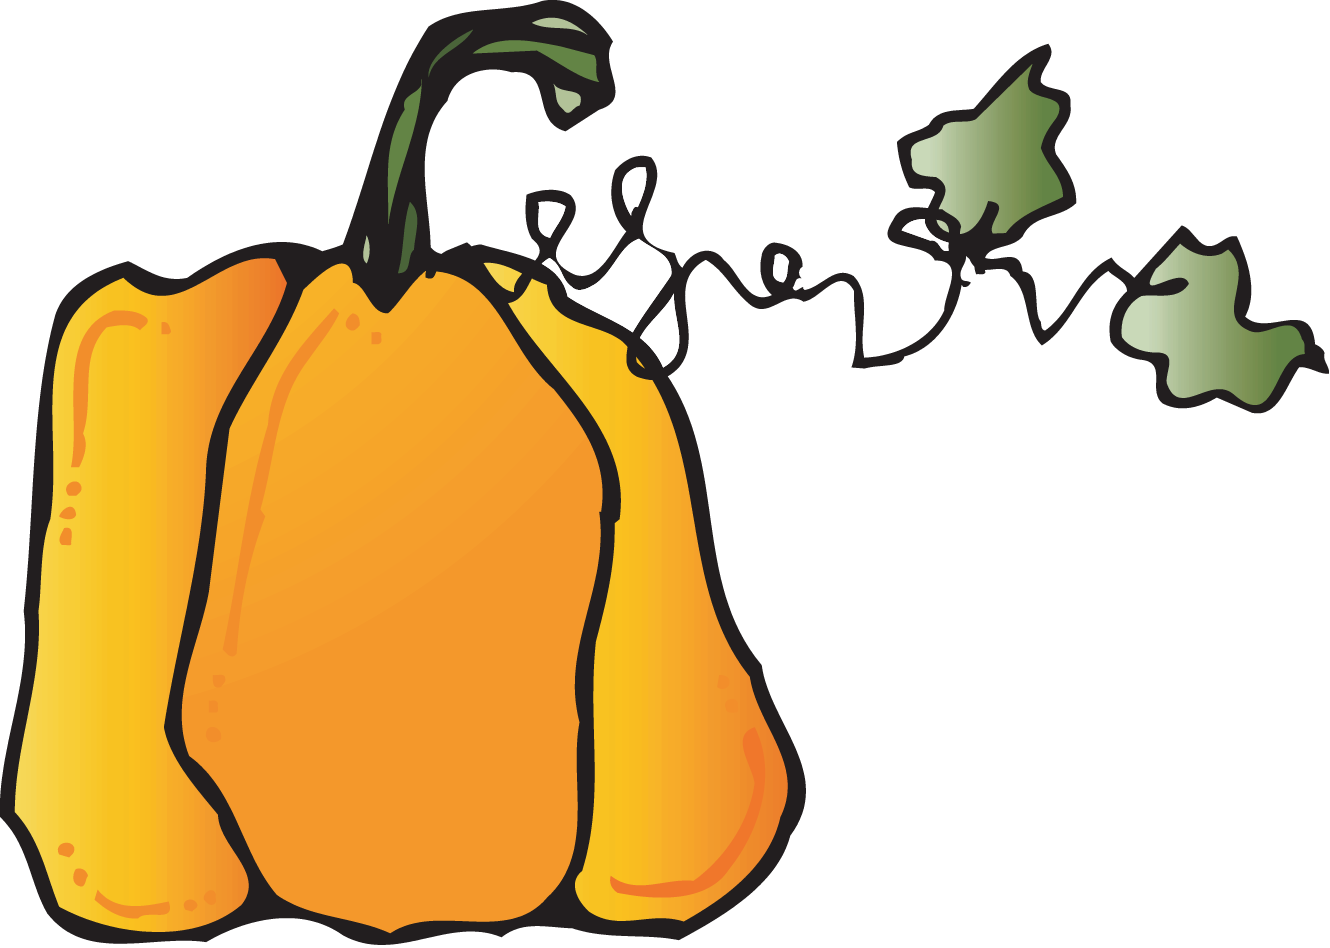 Dj inkers halloween clipart png royalty free stock  png royalty free stock